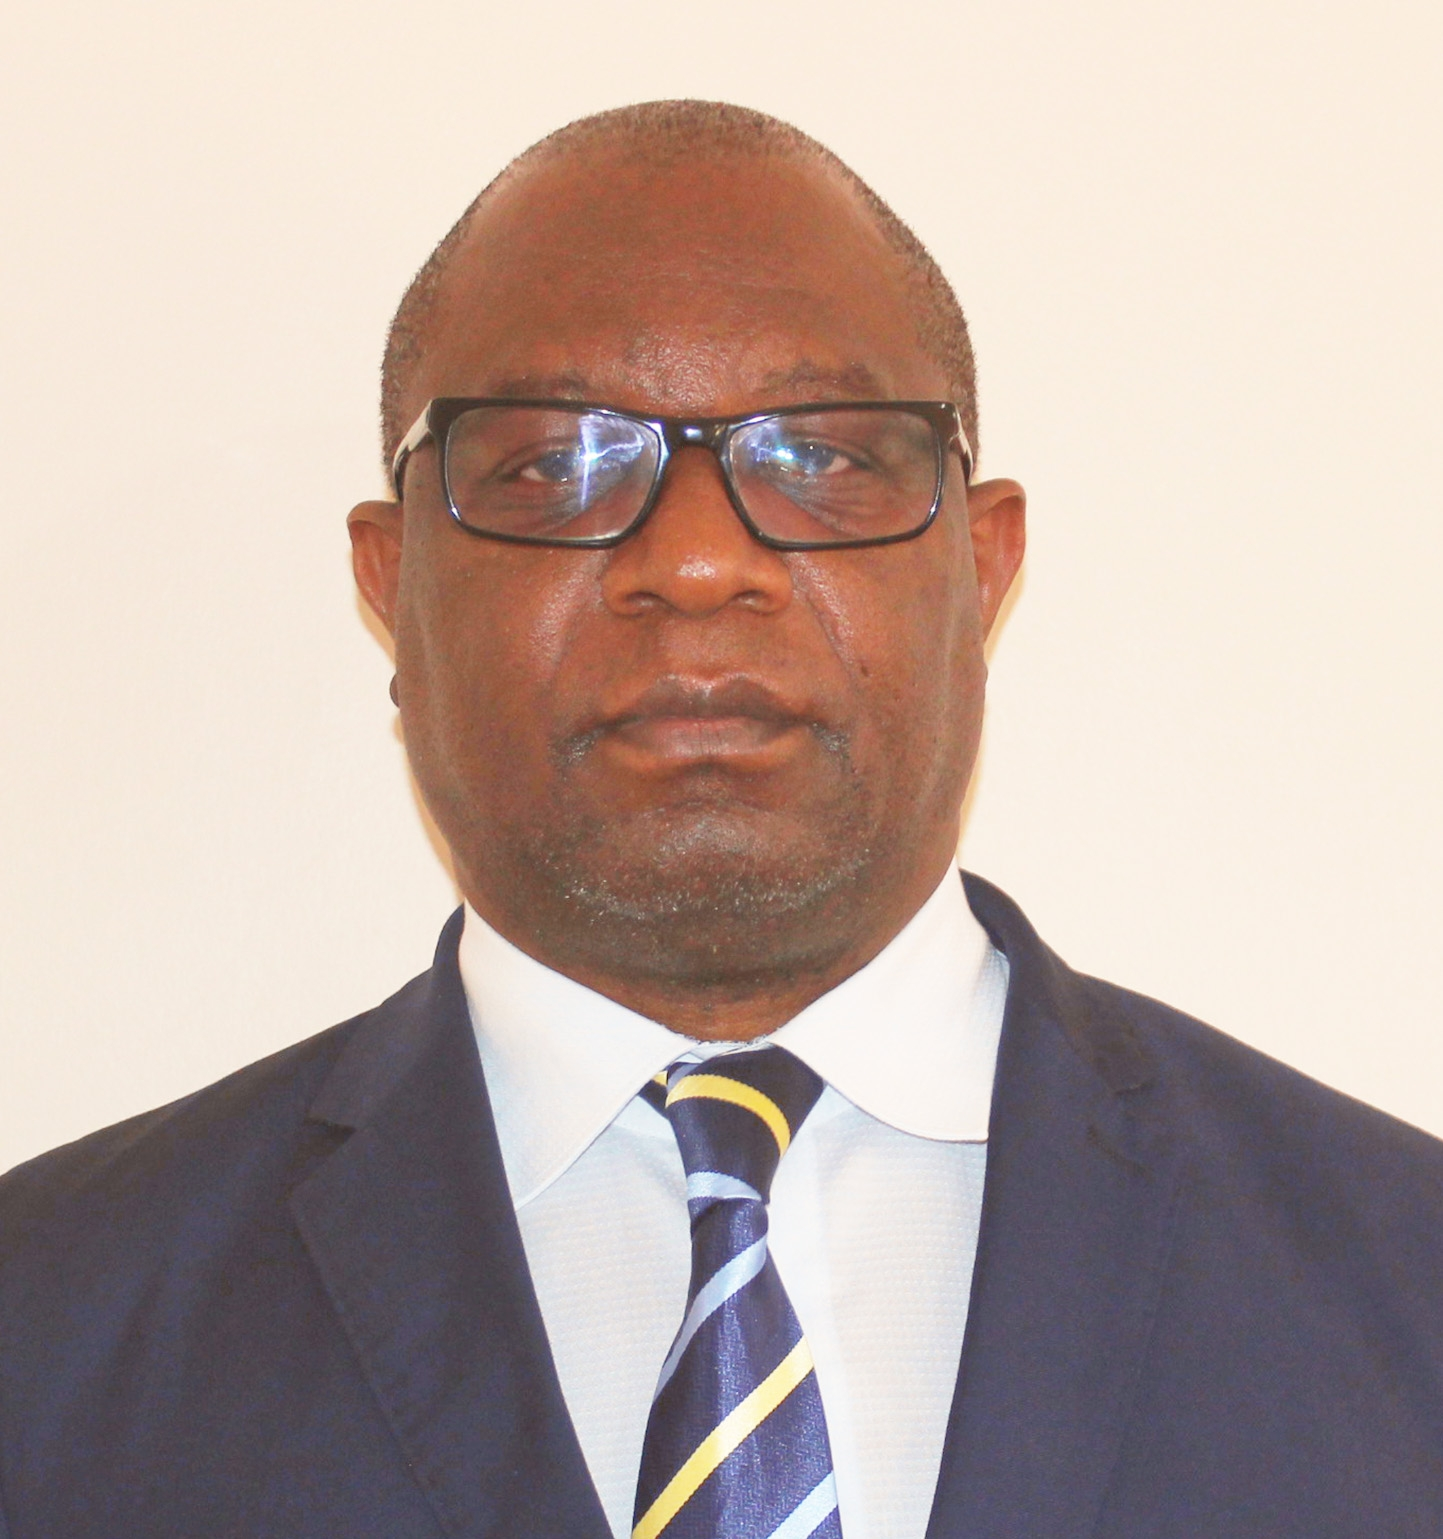 Head of Administration - Henry Chiwalo